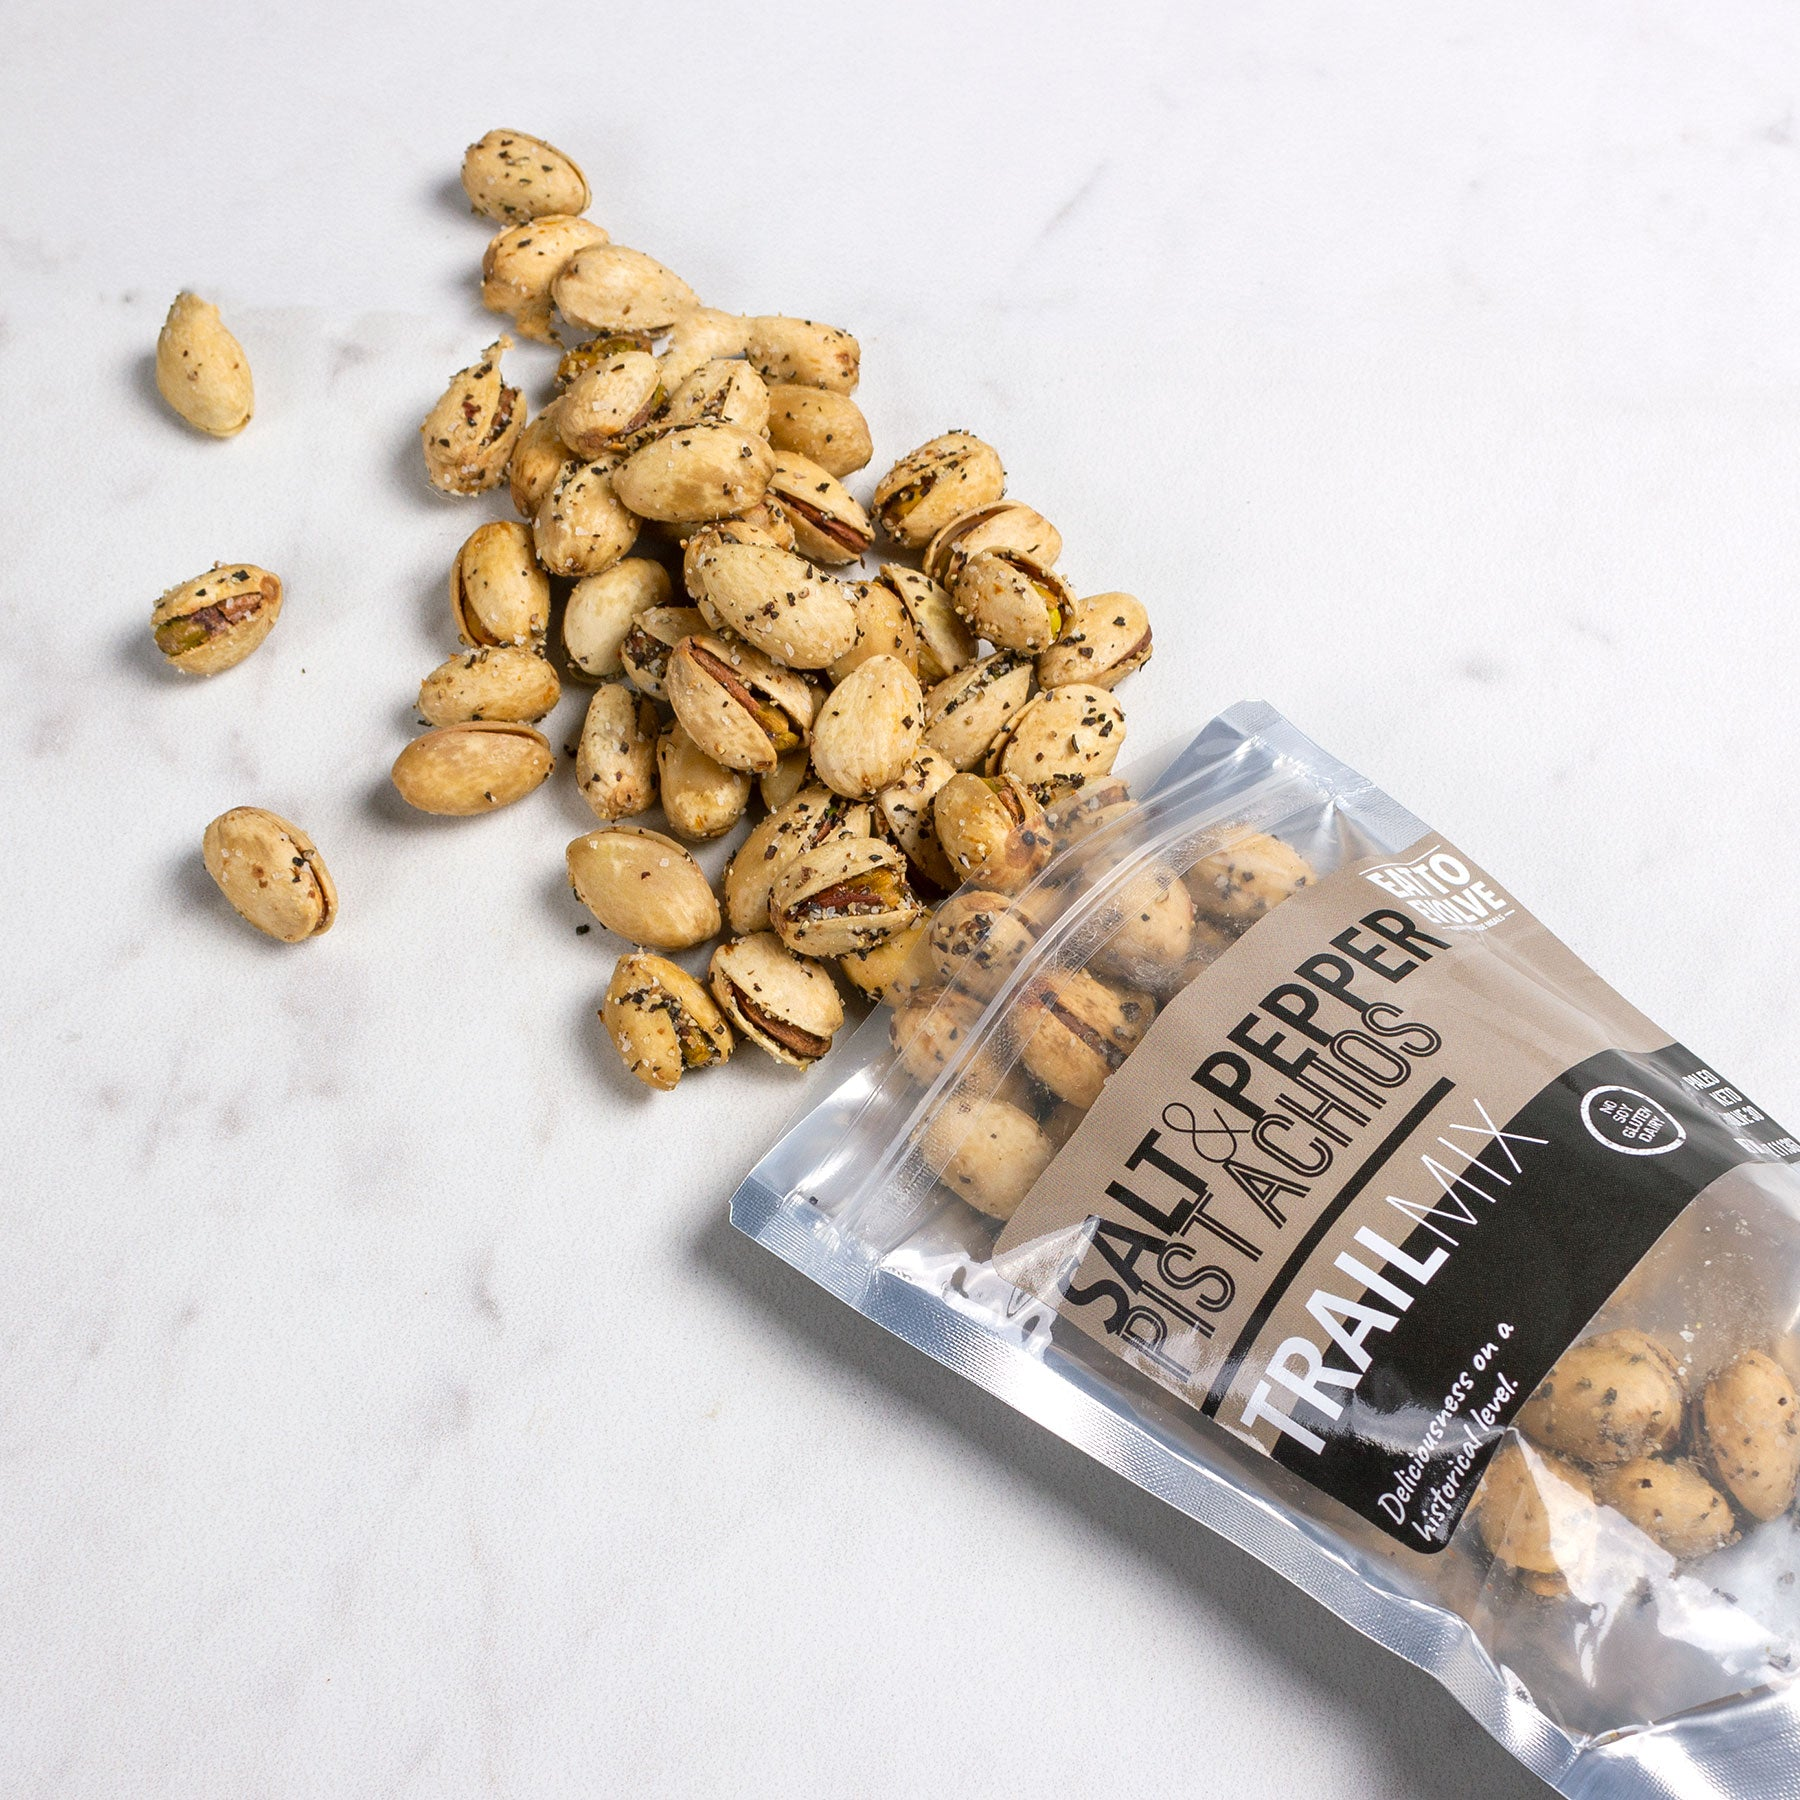 Salt and Pepper Pistachio Trail Mix